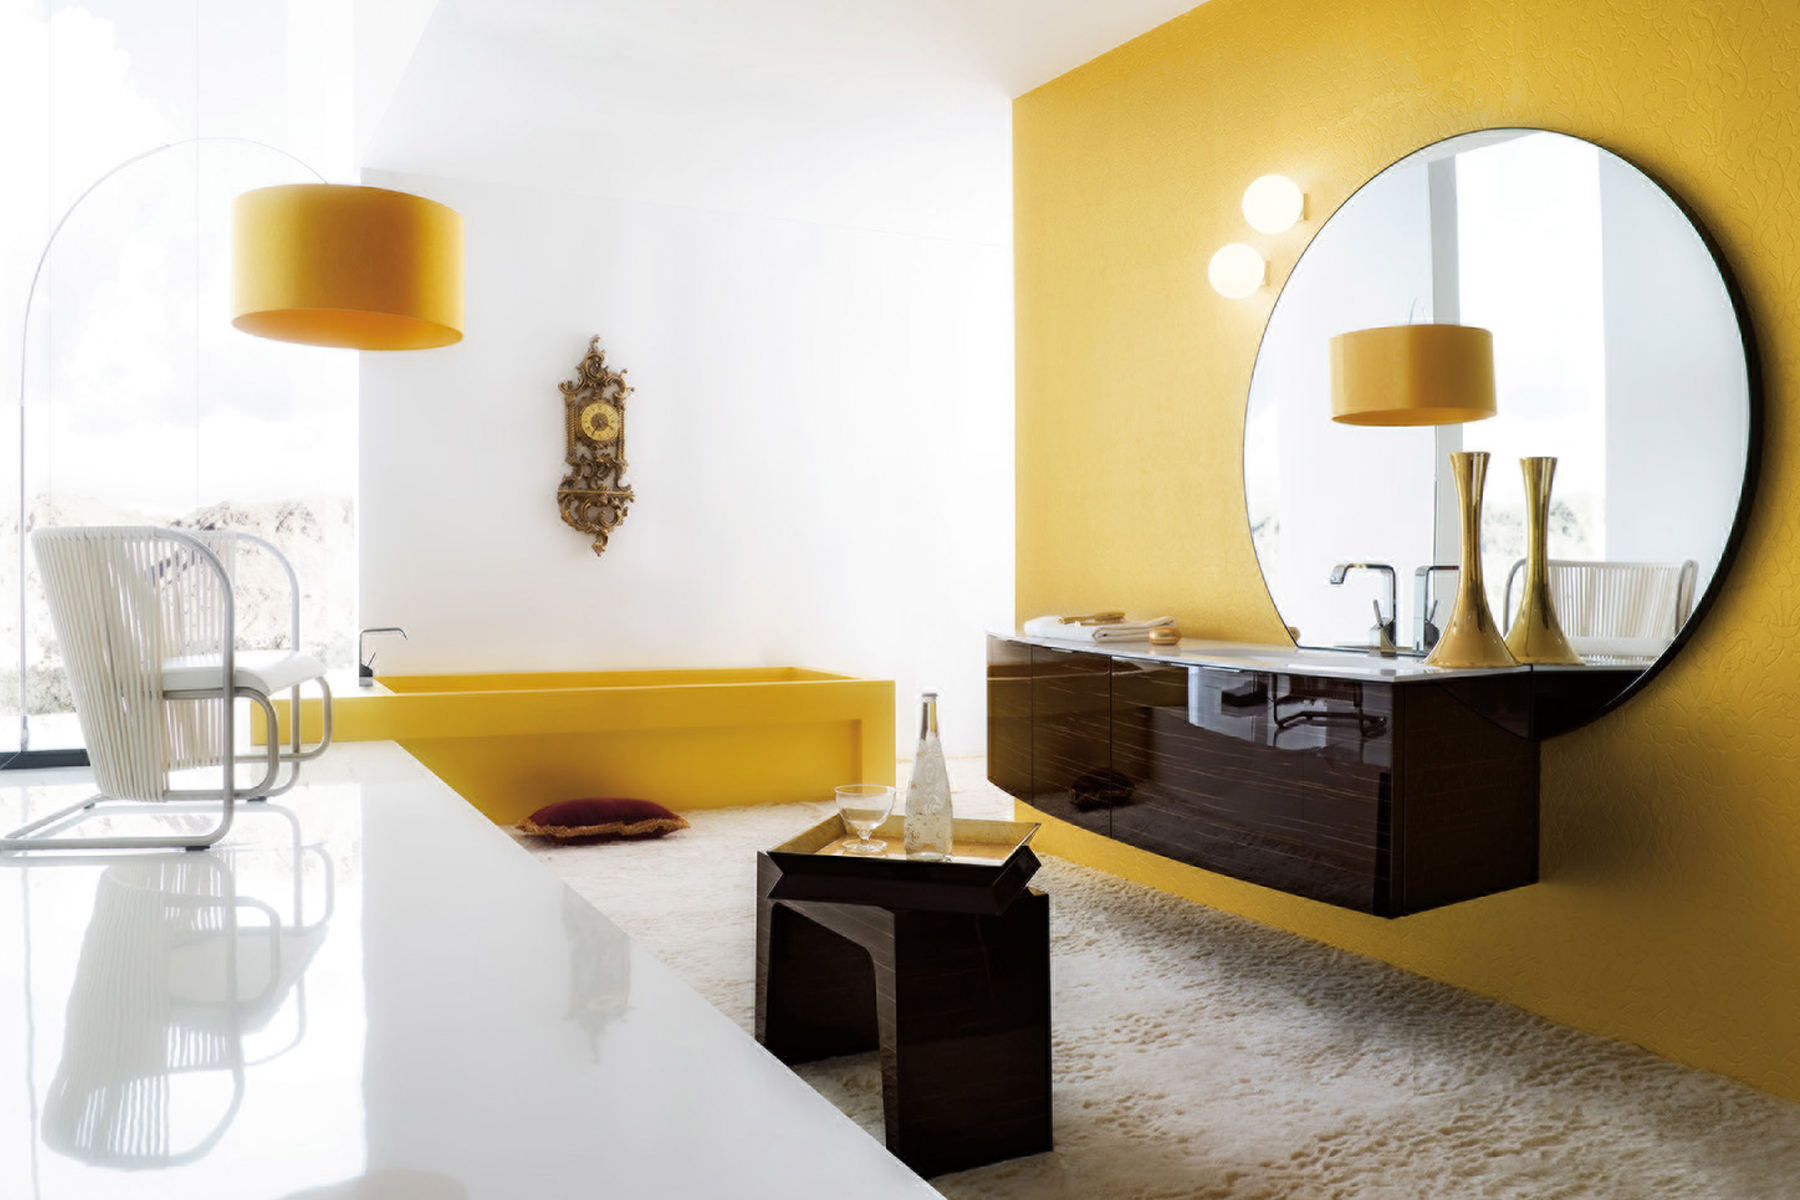 Contemporary master bath features yellow accent wall, semi-custom wall-mounted high gloss laminate floating vanity with white counter and undermount sink, yellow-painted surround for the soaking tub and low pile carpet throughout. Design by Jeff Eakley of Bilotta Kitchens.